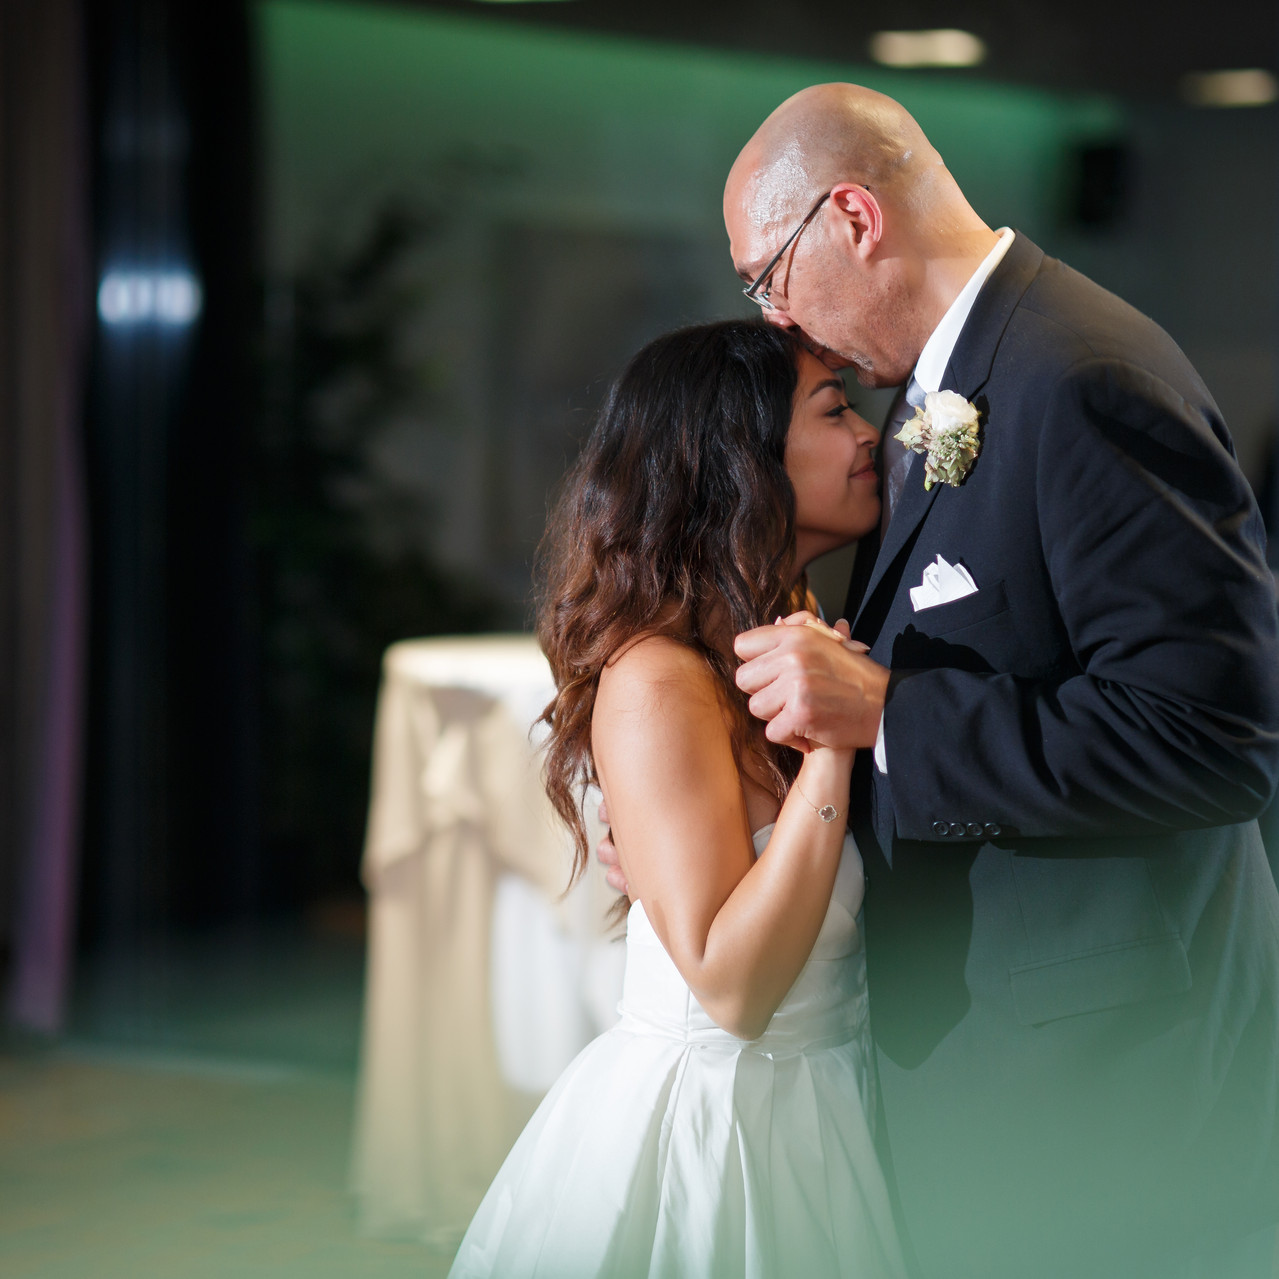 Mia Jesse Wedding September 2015 Camera One card two (239 of 511)